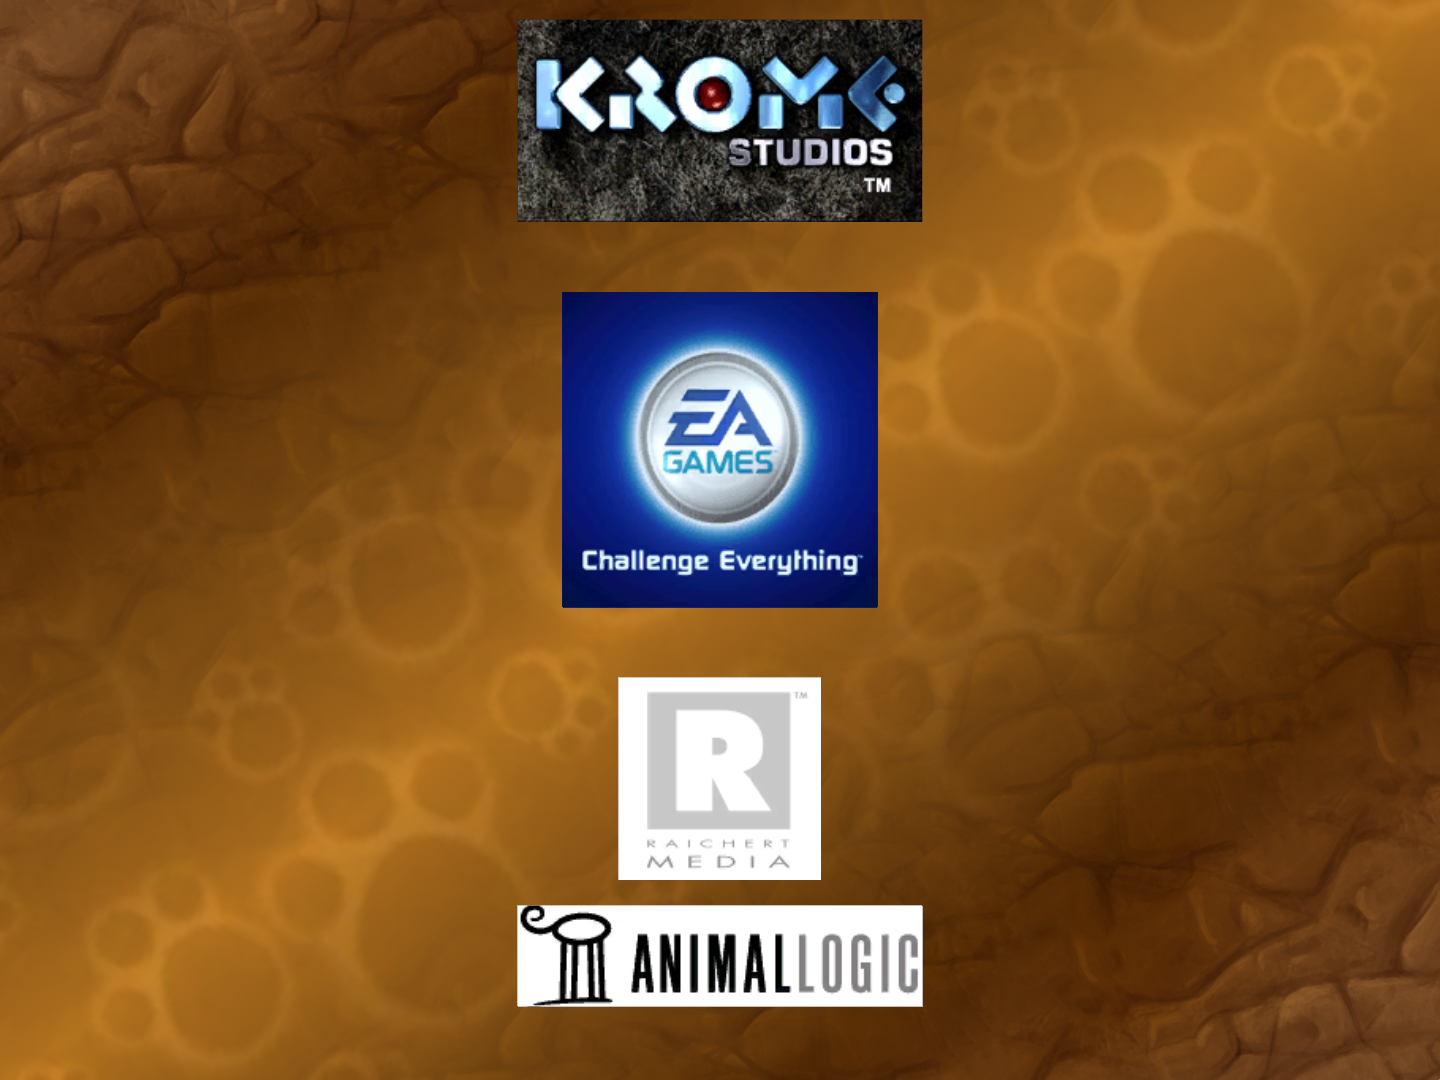 Krome Studios, EA Games, Raichert Media and Animal Logic (TY the Tasmanian Tiger in-credit logos)